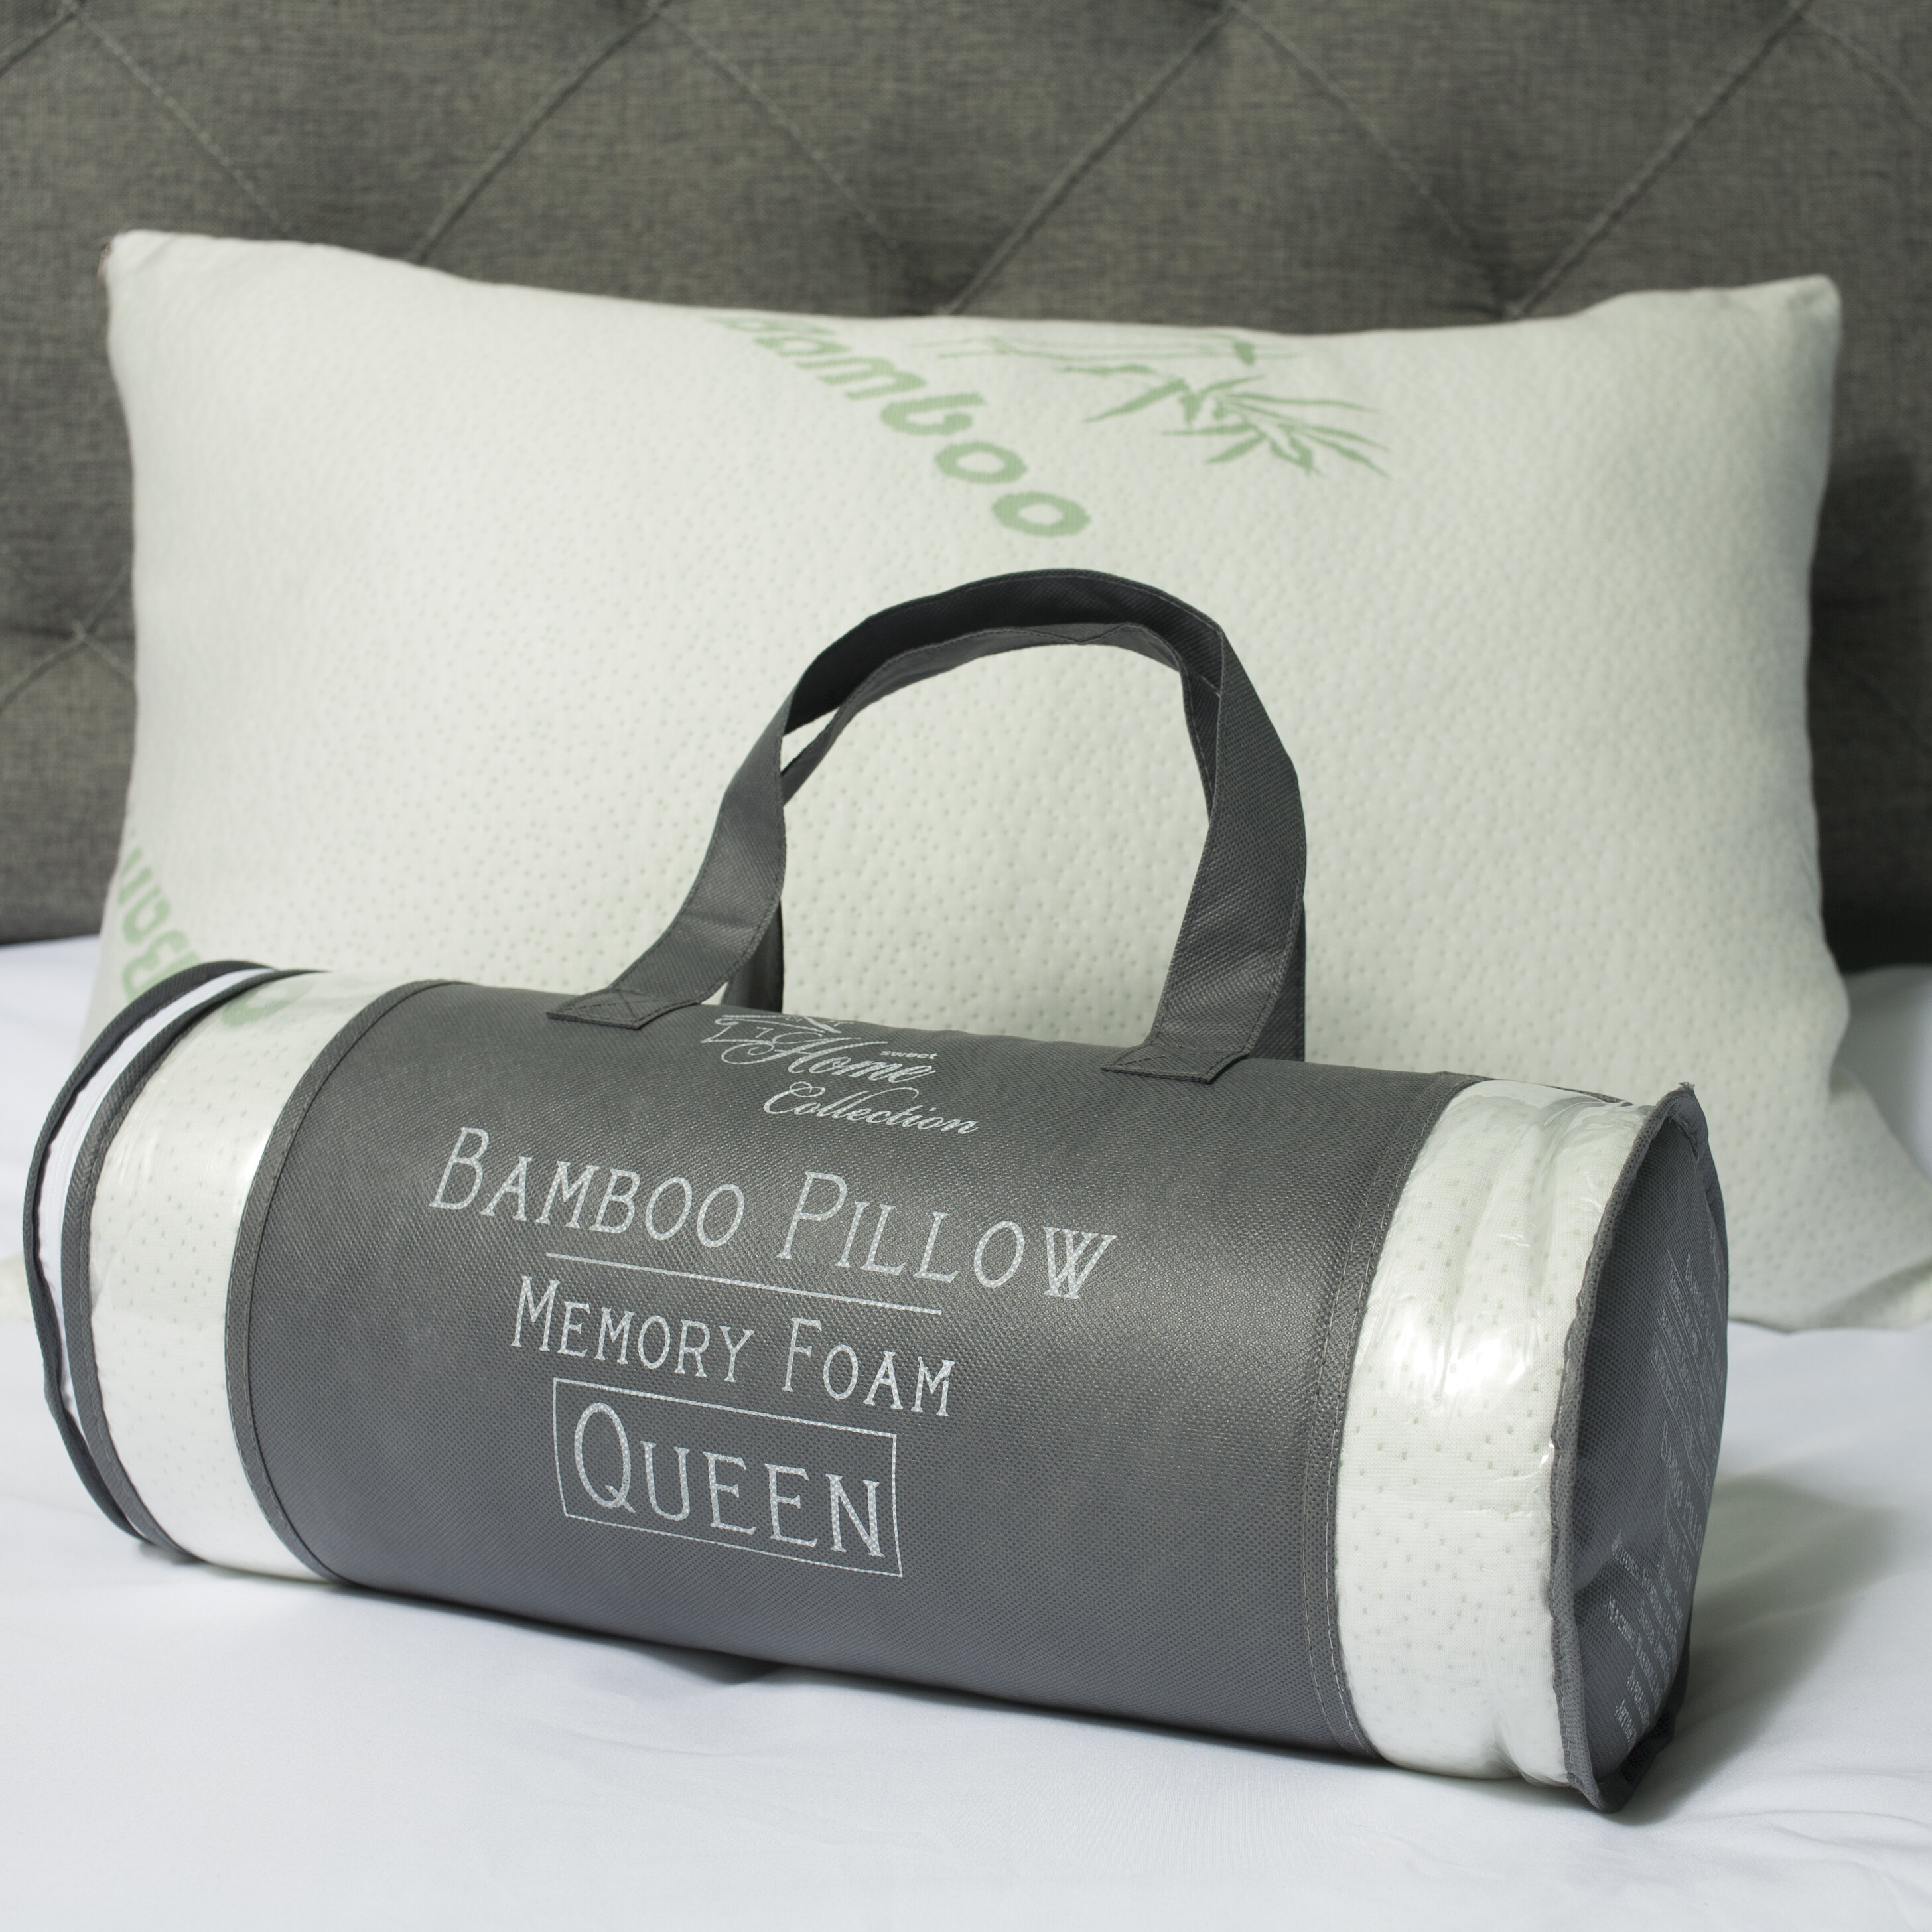 products comfort pillow img travel king comforter hotel bamboo